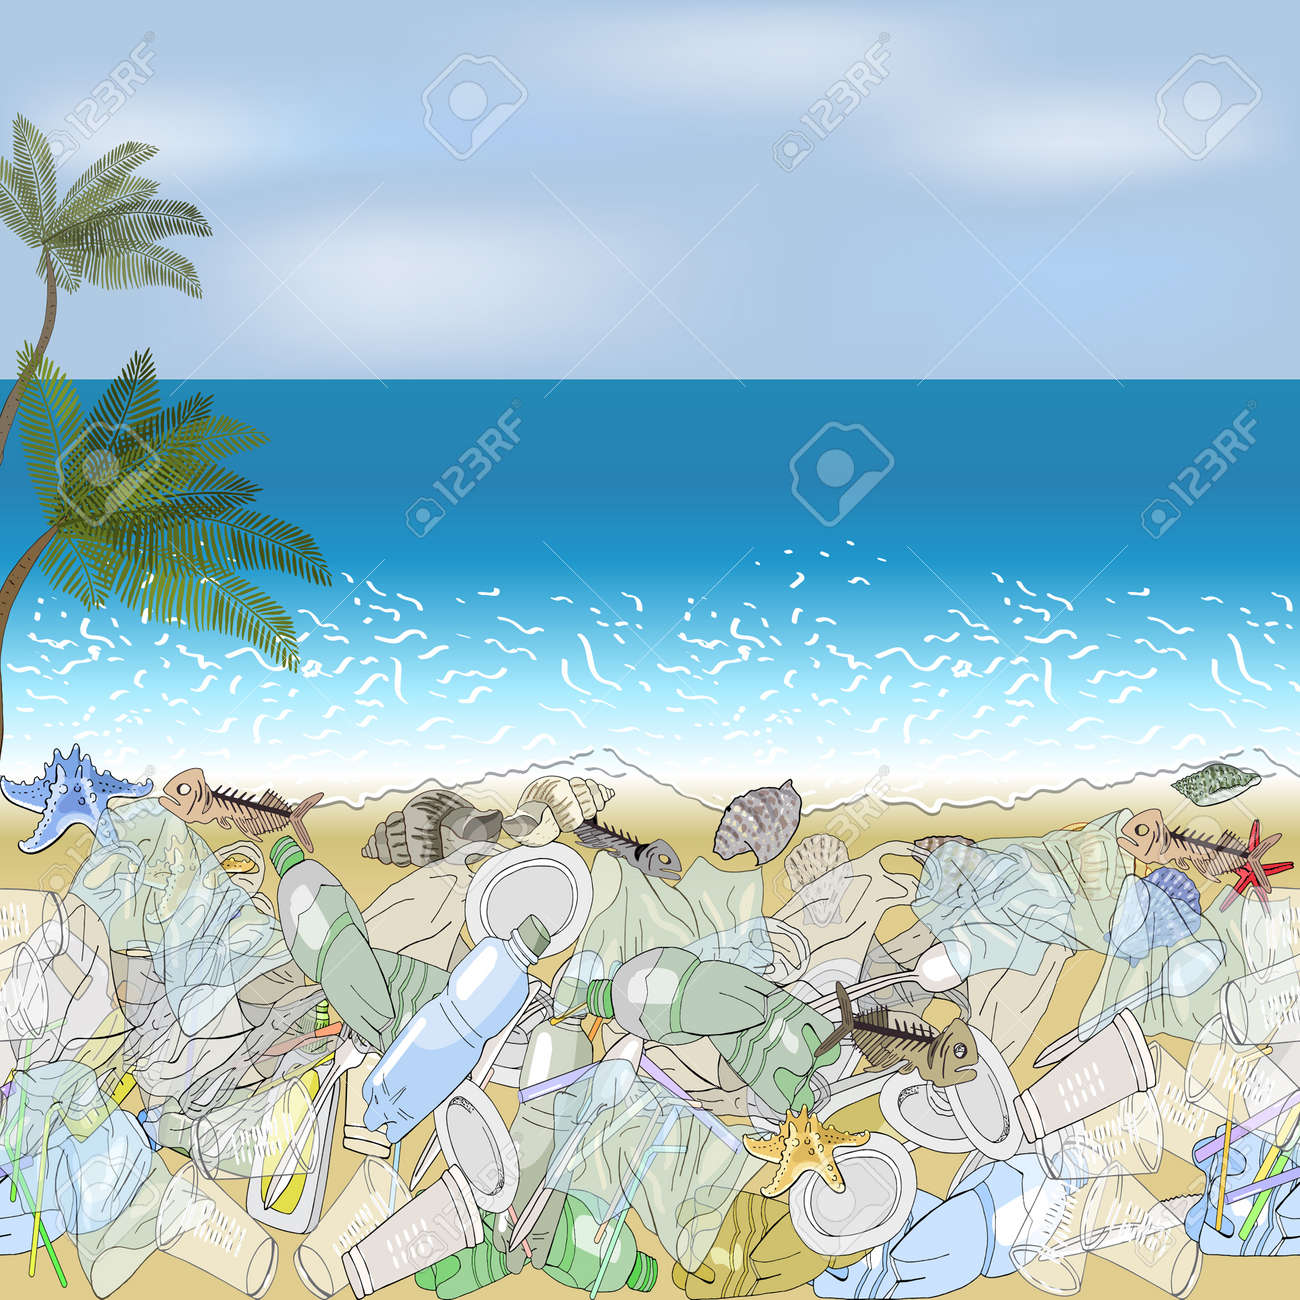 Environmental disaster of plastic debris in the ocean. Garbage on the coast against the sky as a backdrop. The concept of ecology and the World Cleanup Day. - 160622826